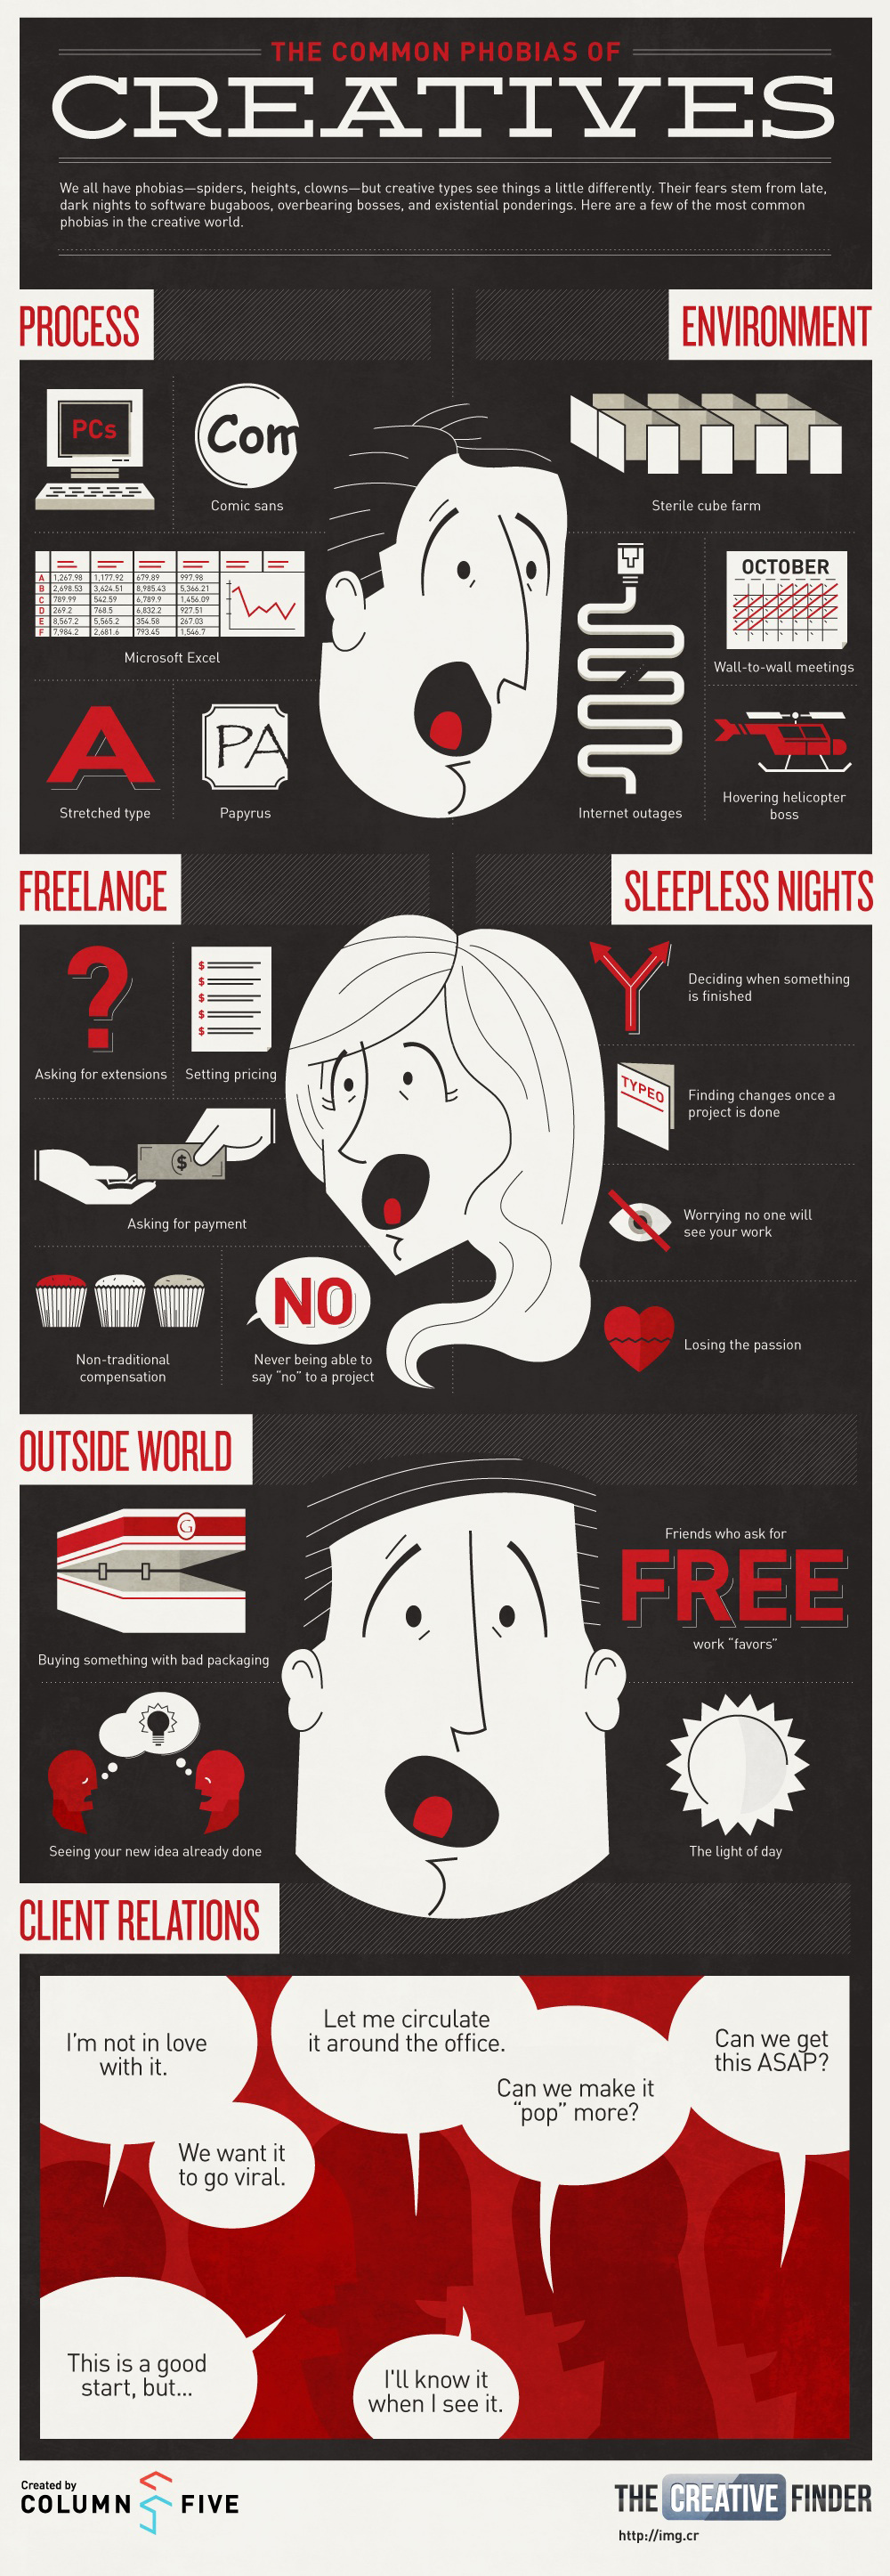 Creatives Phobia-Infographic